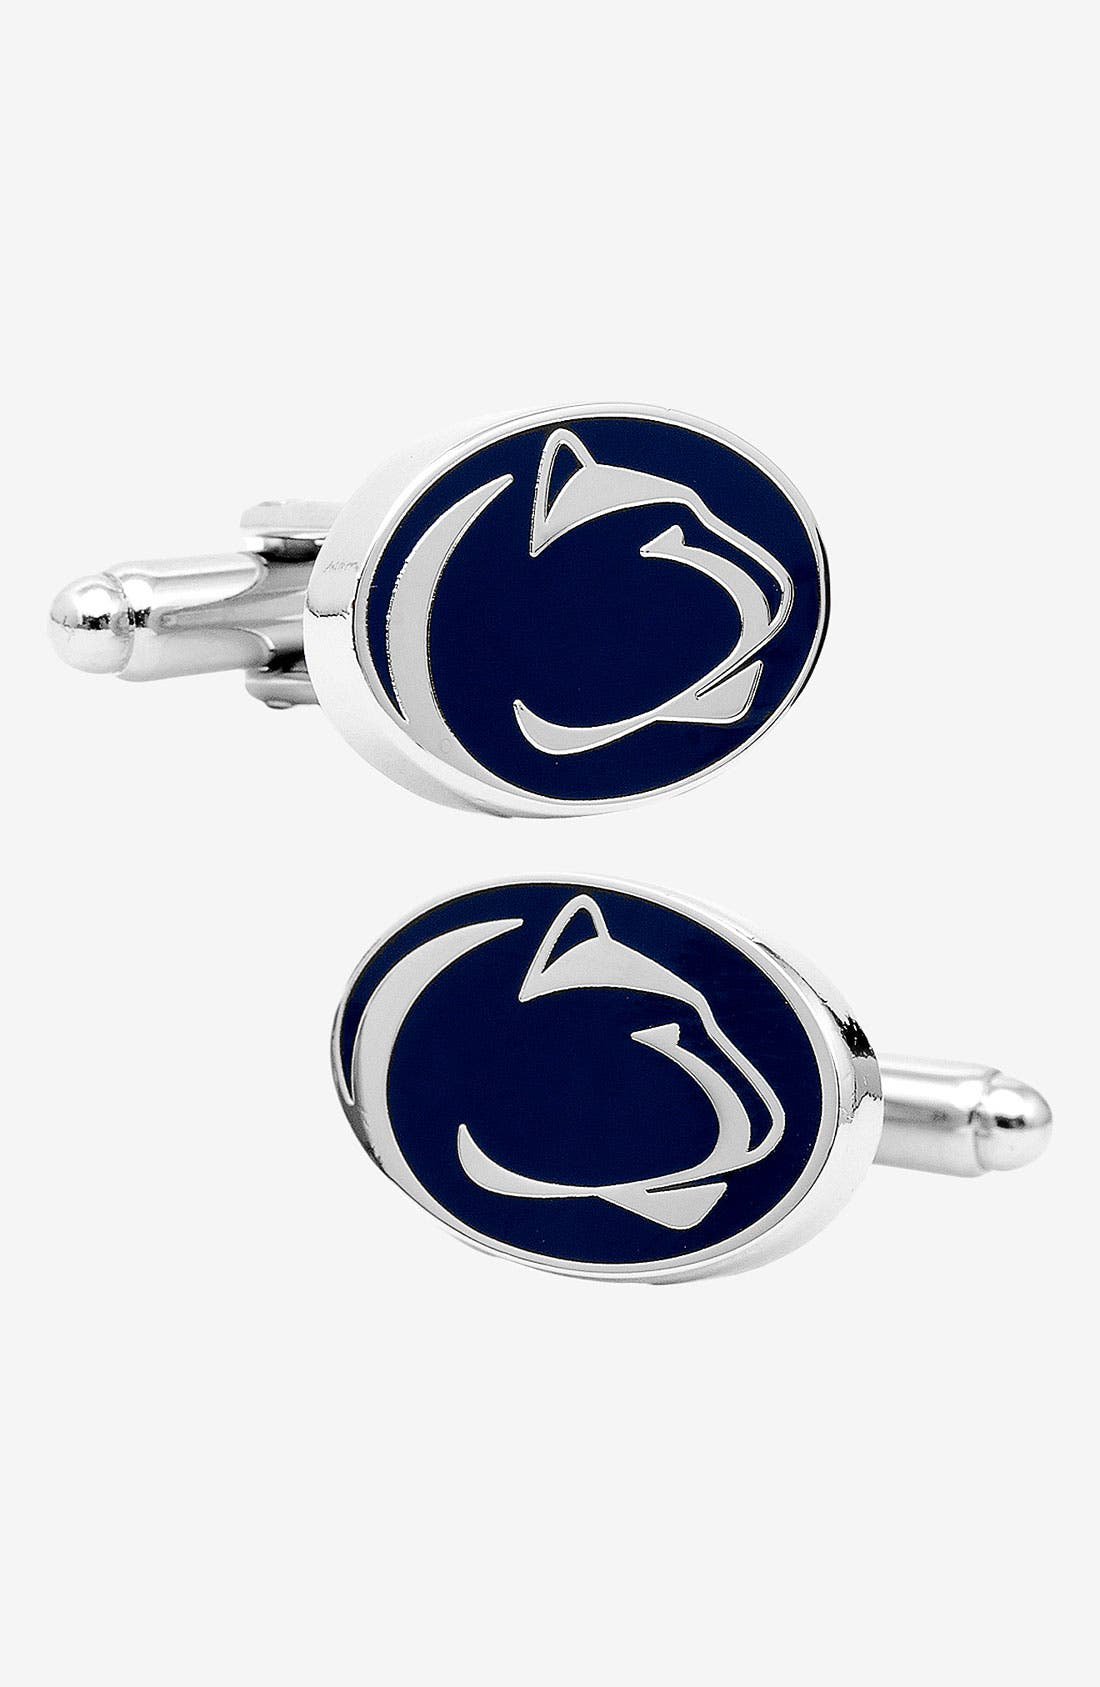 'Penn State University Nittany Lions' Cuff Links,                             Main thumbnail 1, color,                             Navy/ White